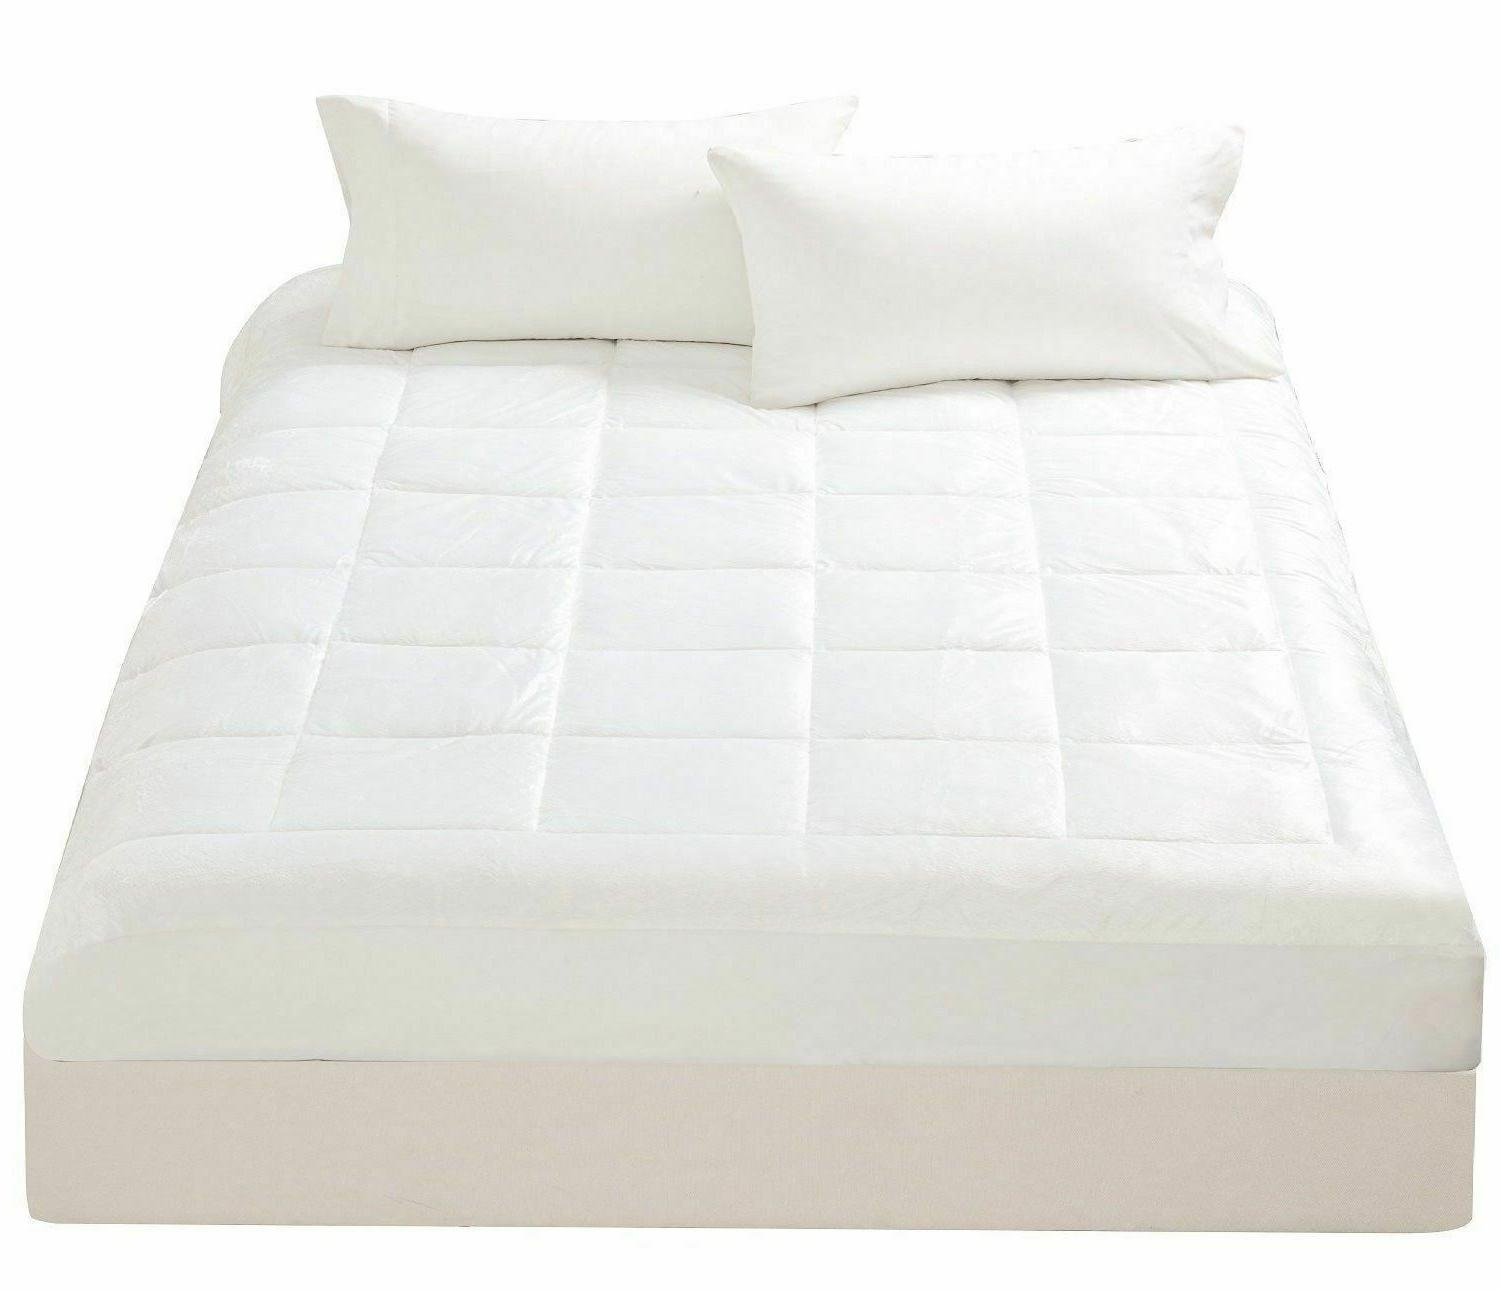 microplush mattress pad super soft cover overfilled